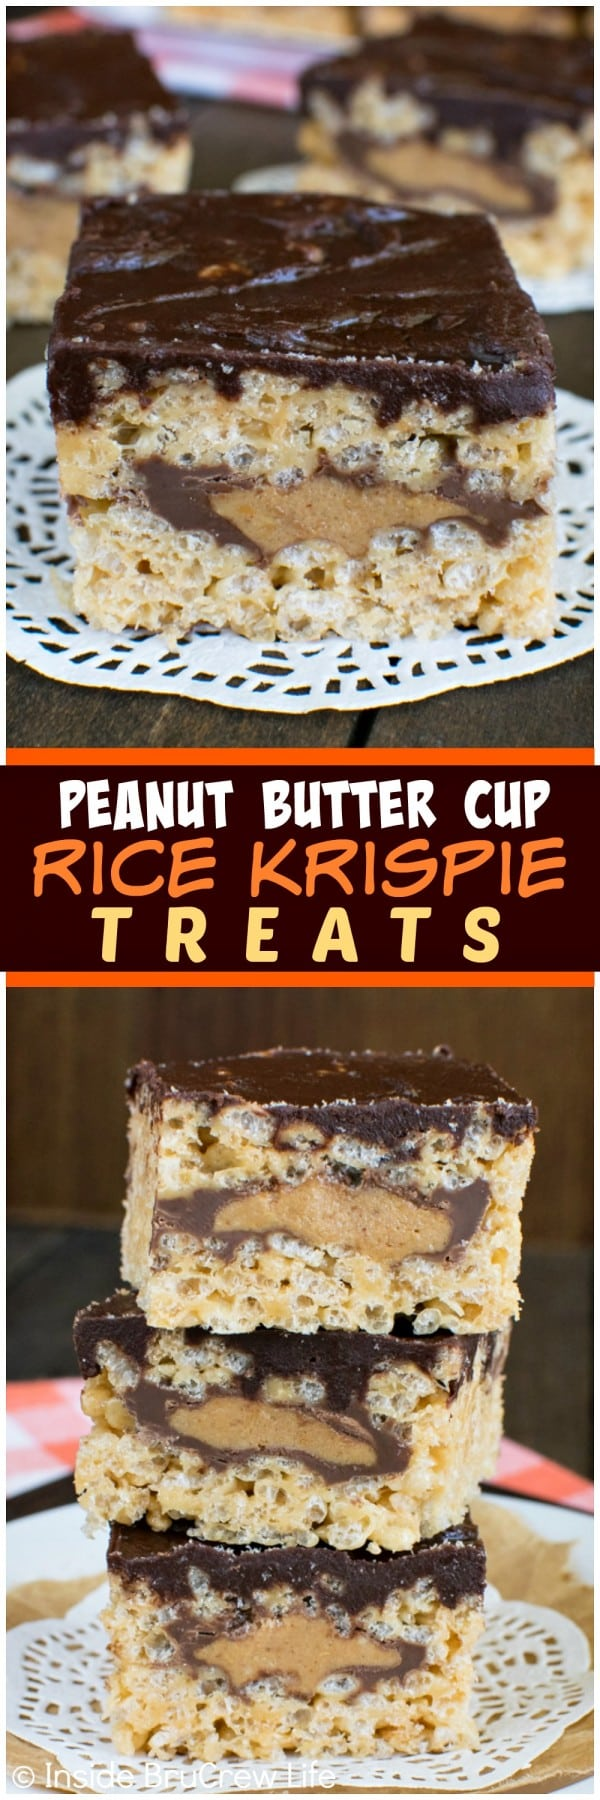 Peanut Butter Cup Rice Krispie Treats - these easy no bake treats have a hidden layer of candy bars inside. Make this dessert recipe for picnics and parties and watch everyone smile!